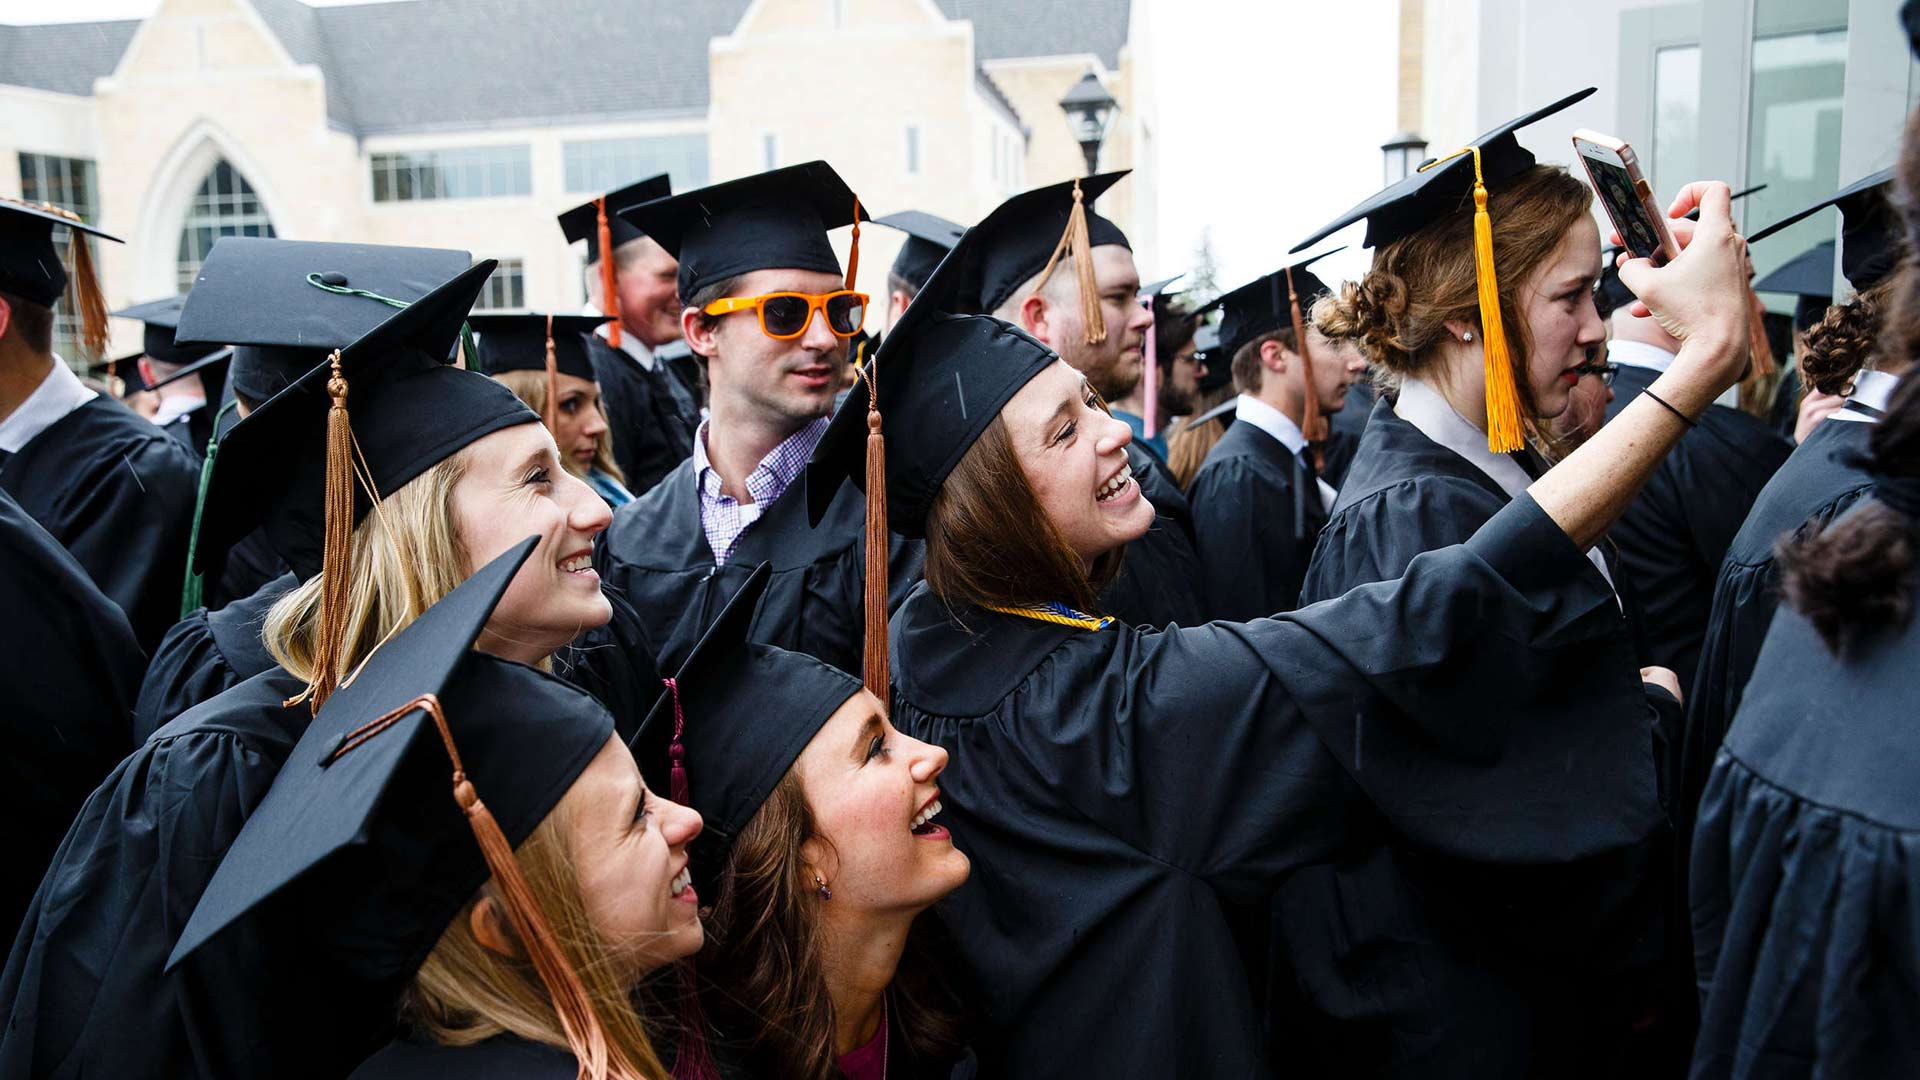 Seniors take a selfie together at an Undergraduate Commencement ceremony